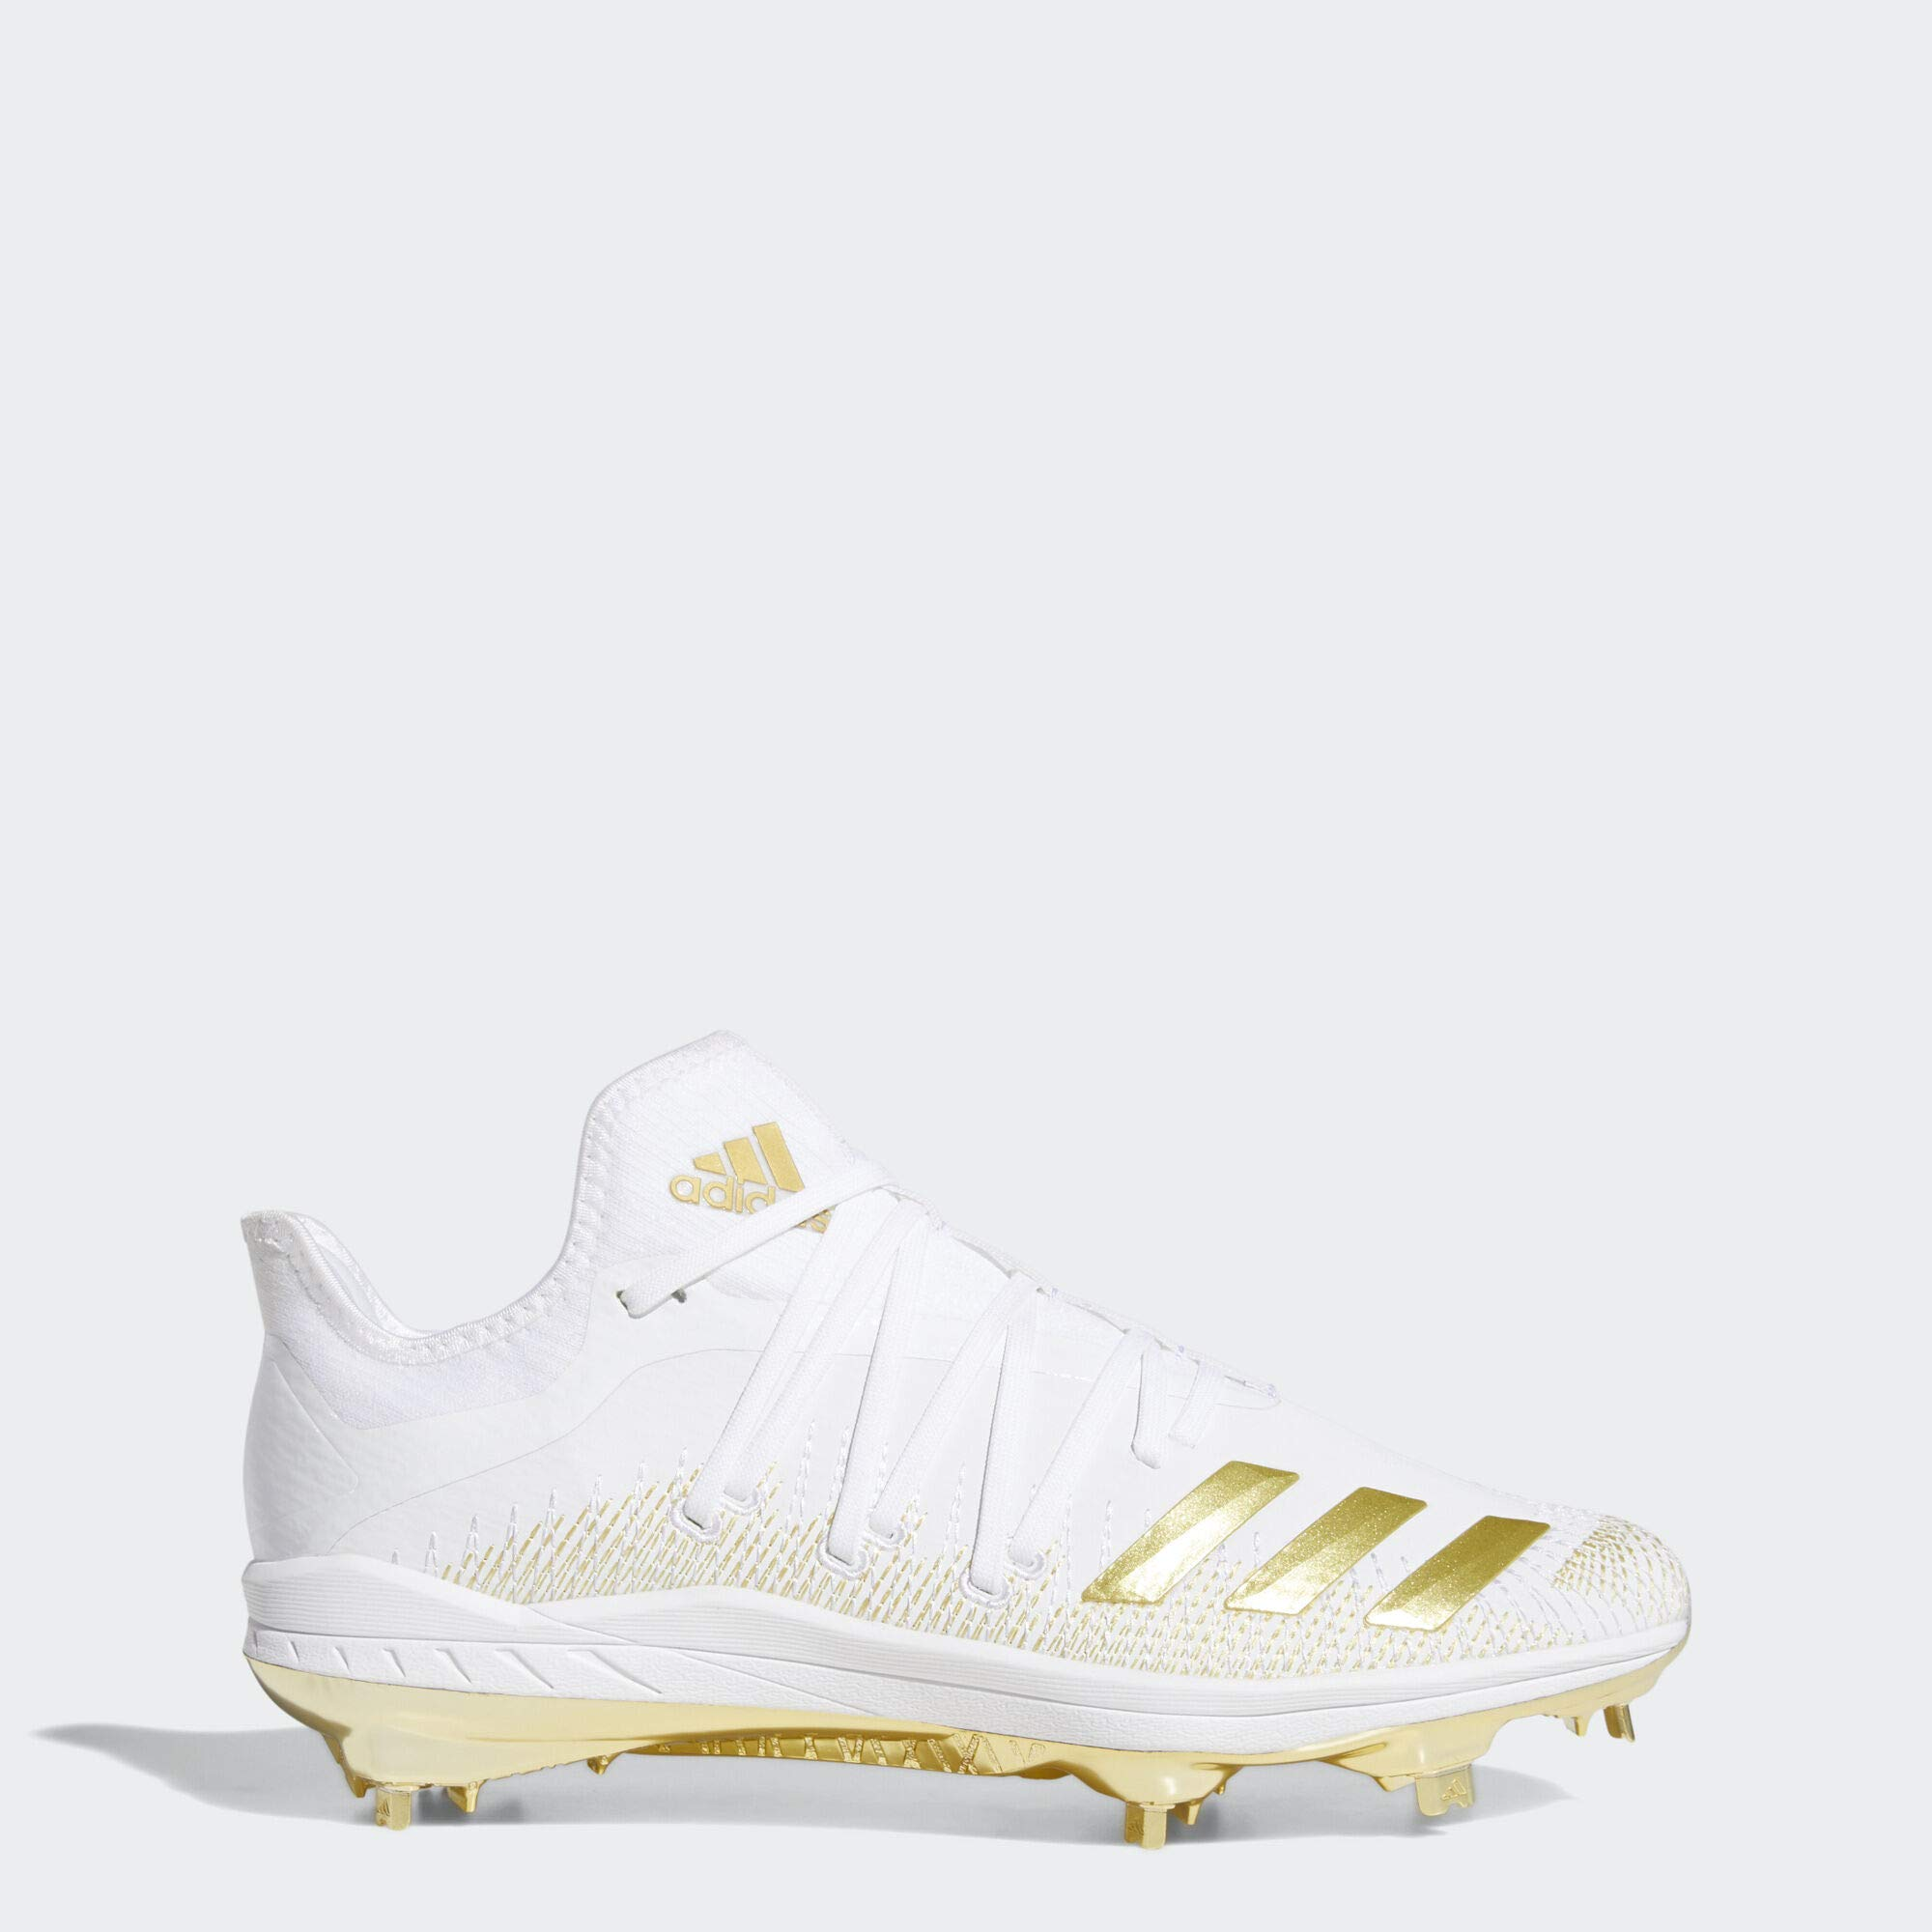 adidas Afterburner 6 Cleats Men's by adidas